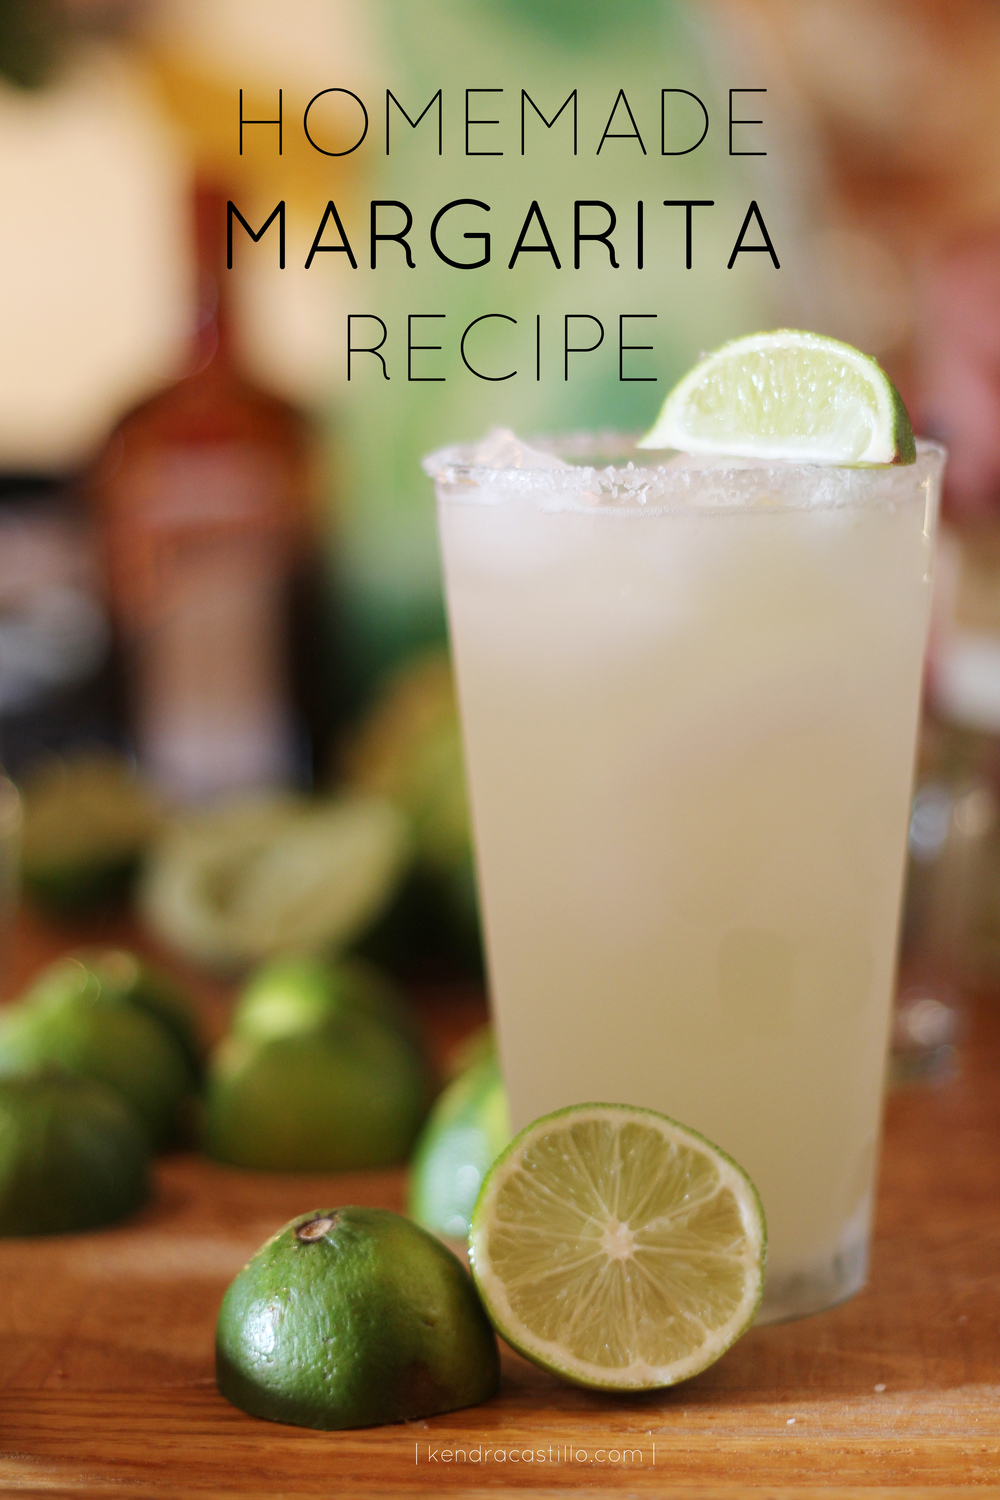 Kendra Castillo: Homemade Classic Margarita Recipe